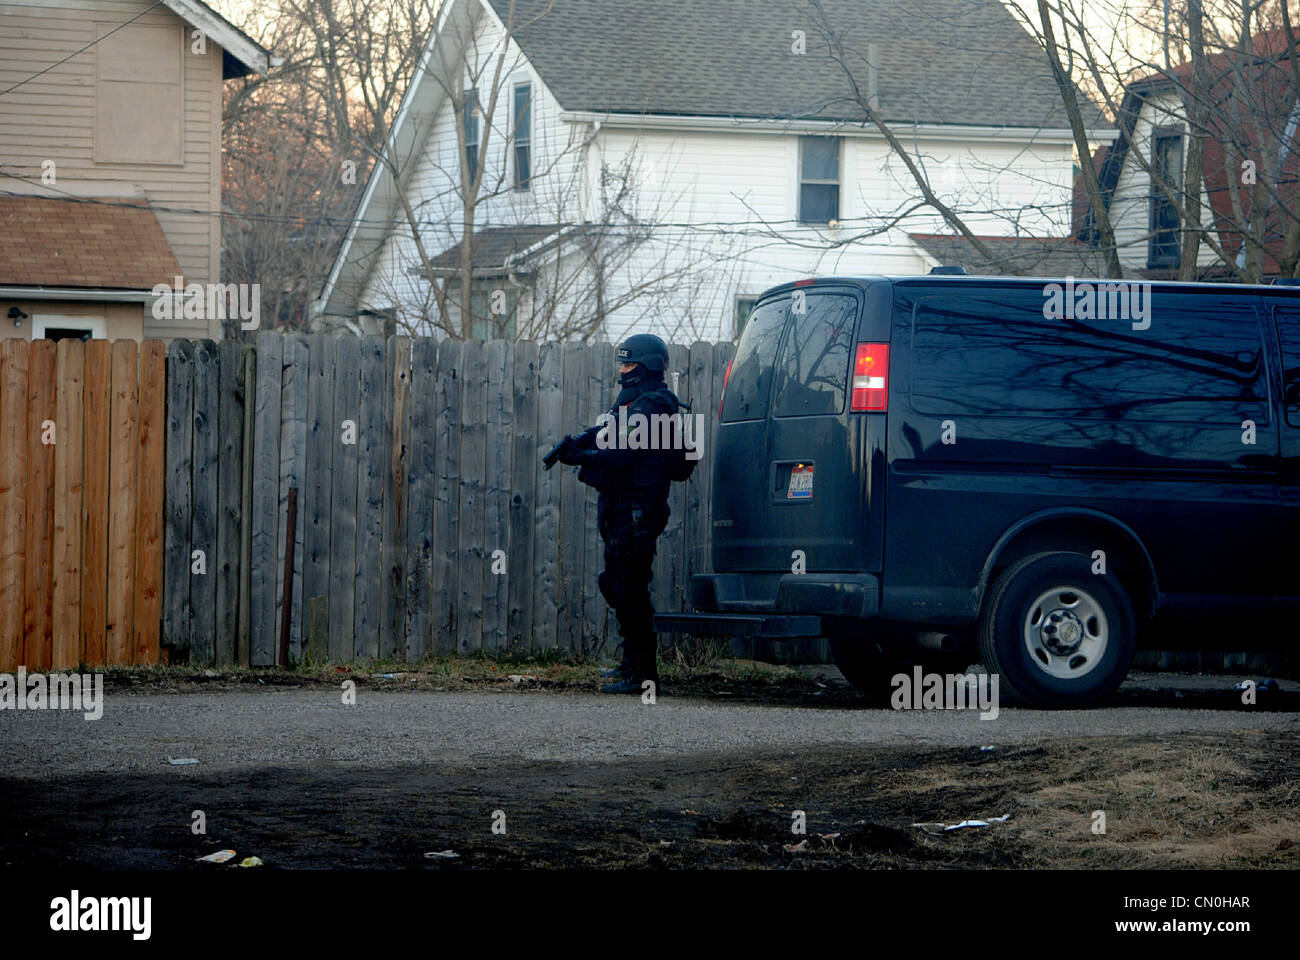 Swat officer,secures back entrance,during a drug raid,fully equipped with weapons. Stock Photo